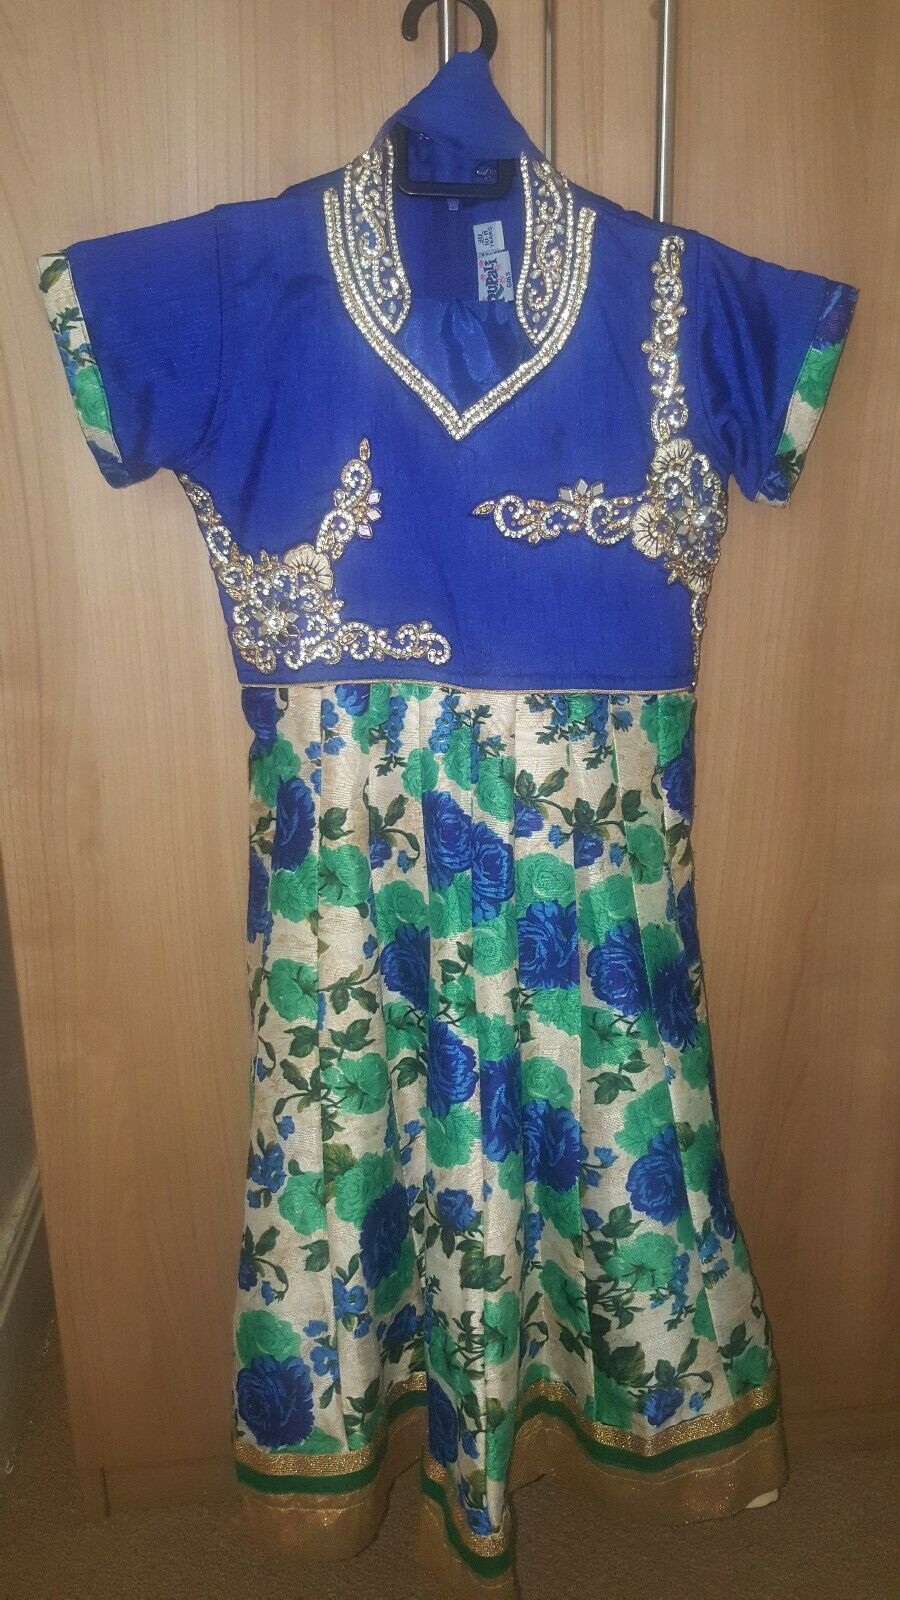 Girls Royal Blue Asian Churidaar printed Suit 10-11 yrs with gold stonework